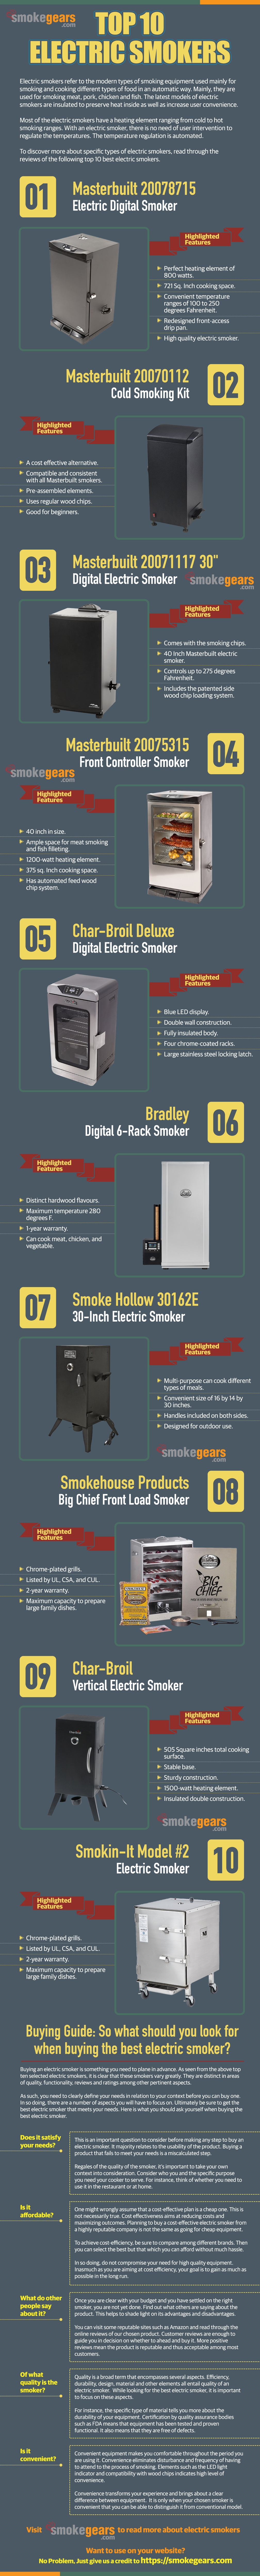 Top 10 Electric Smoker Reviews Infographic